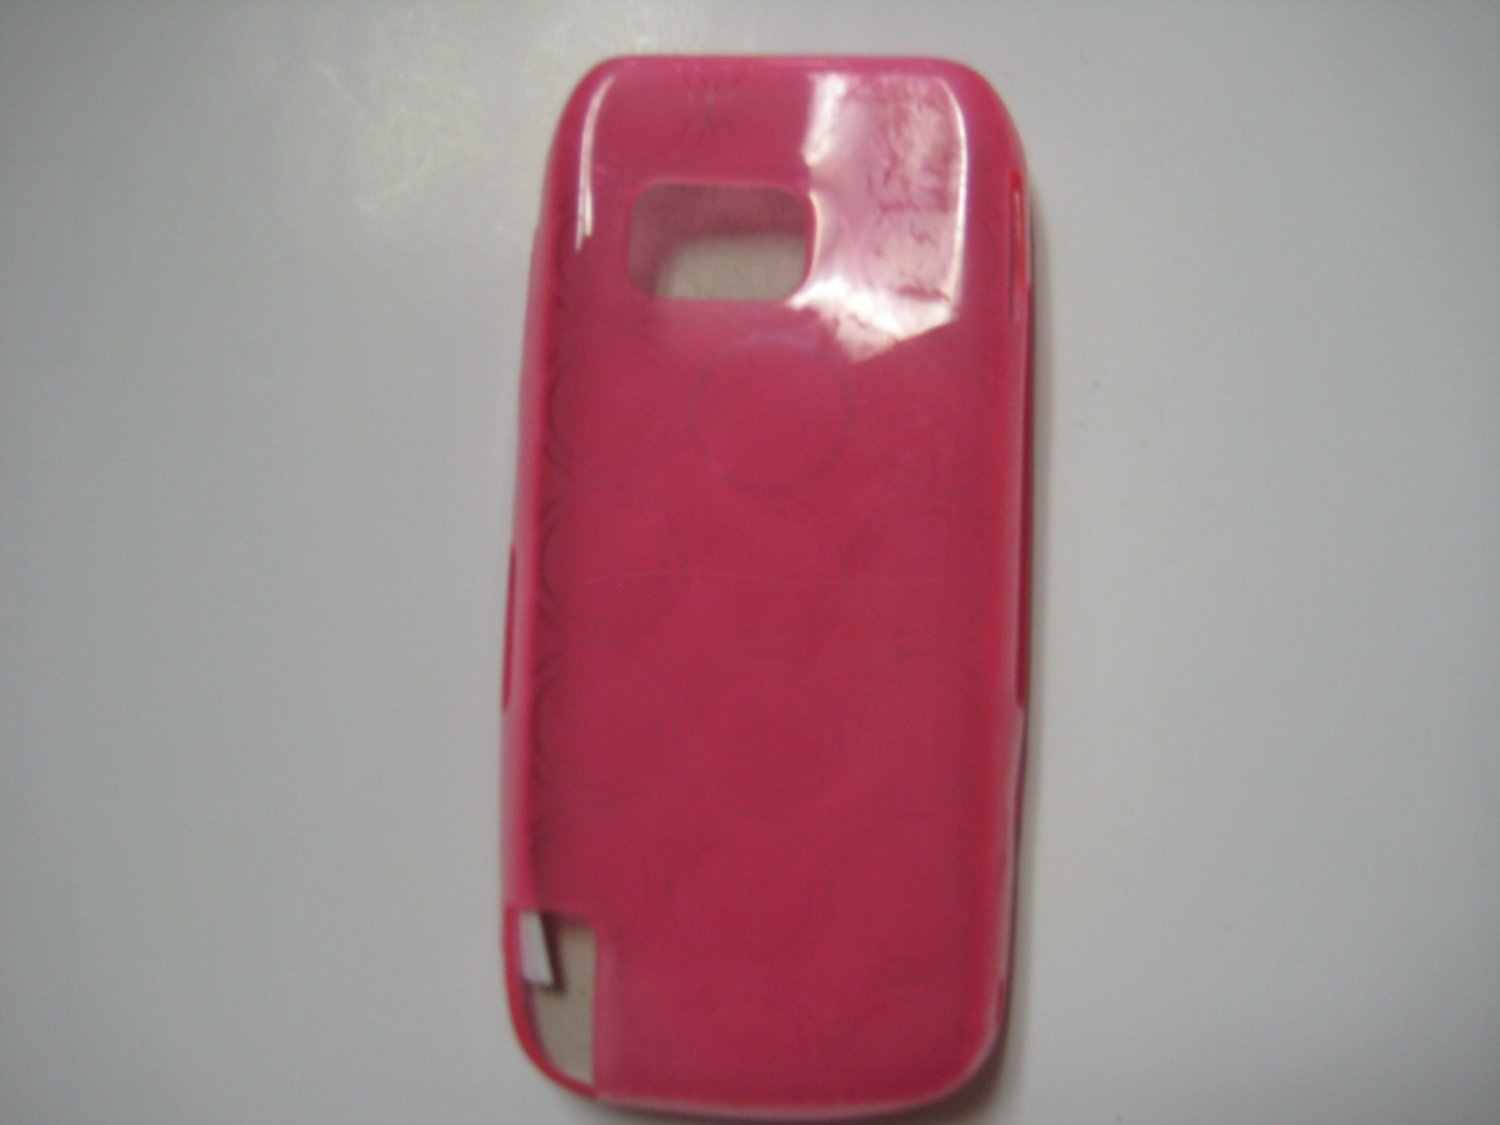 New Hot Pink Transparent Multi-Circles TPU Cover For Nokia Nuron 5230 - (0003)